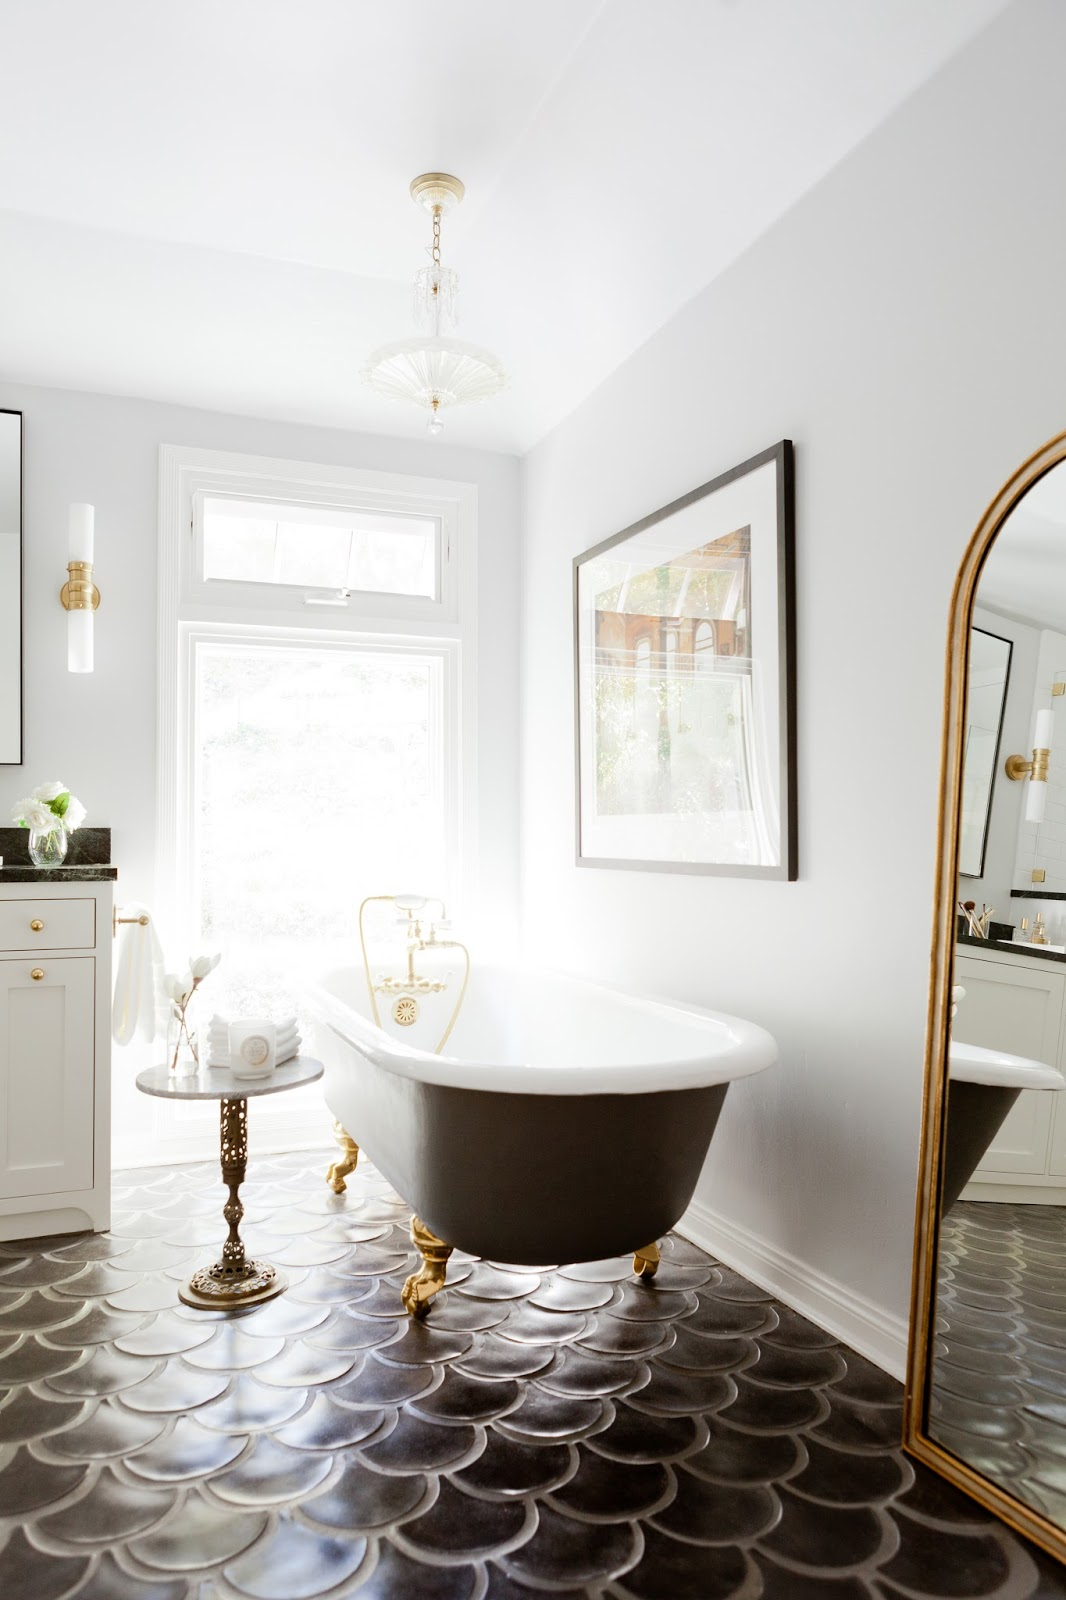 Rosa Beltran Design: DELUXE DOUBLE BATHROOM REMODEL PUBLISHED ON ...